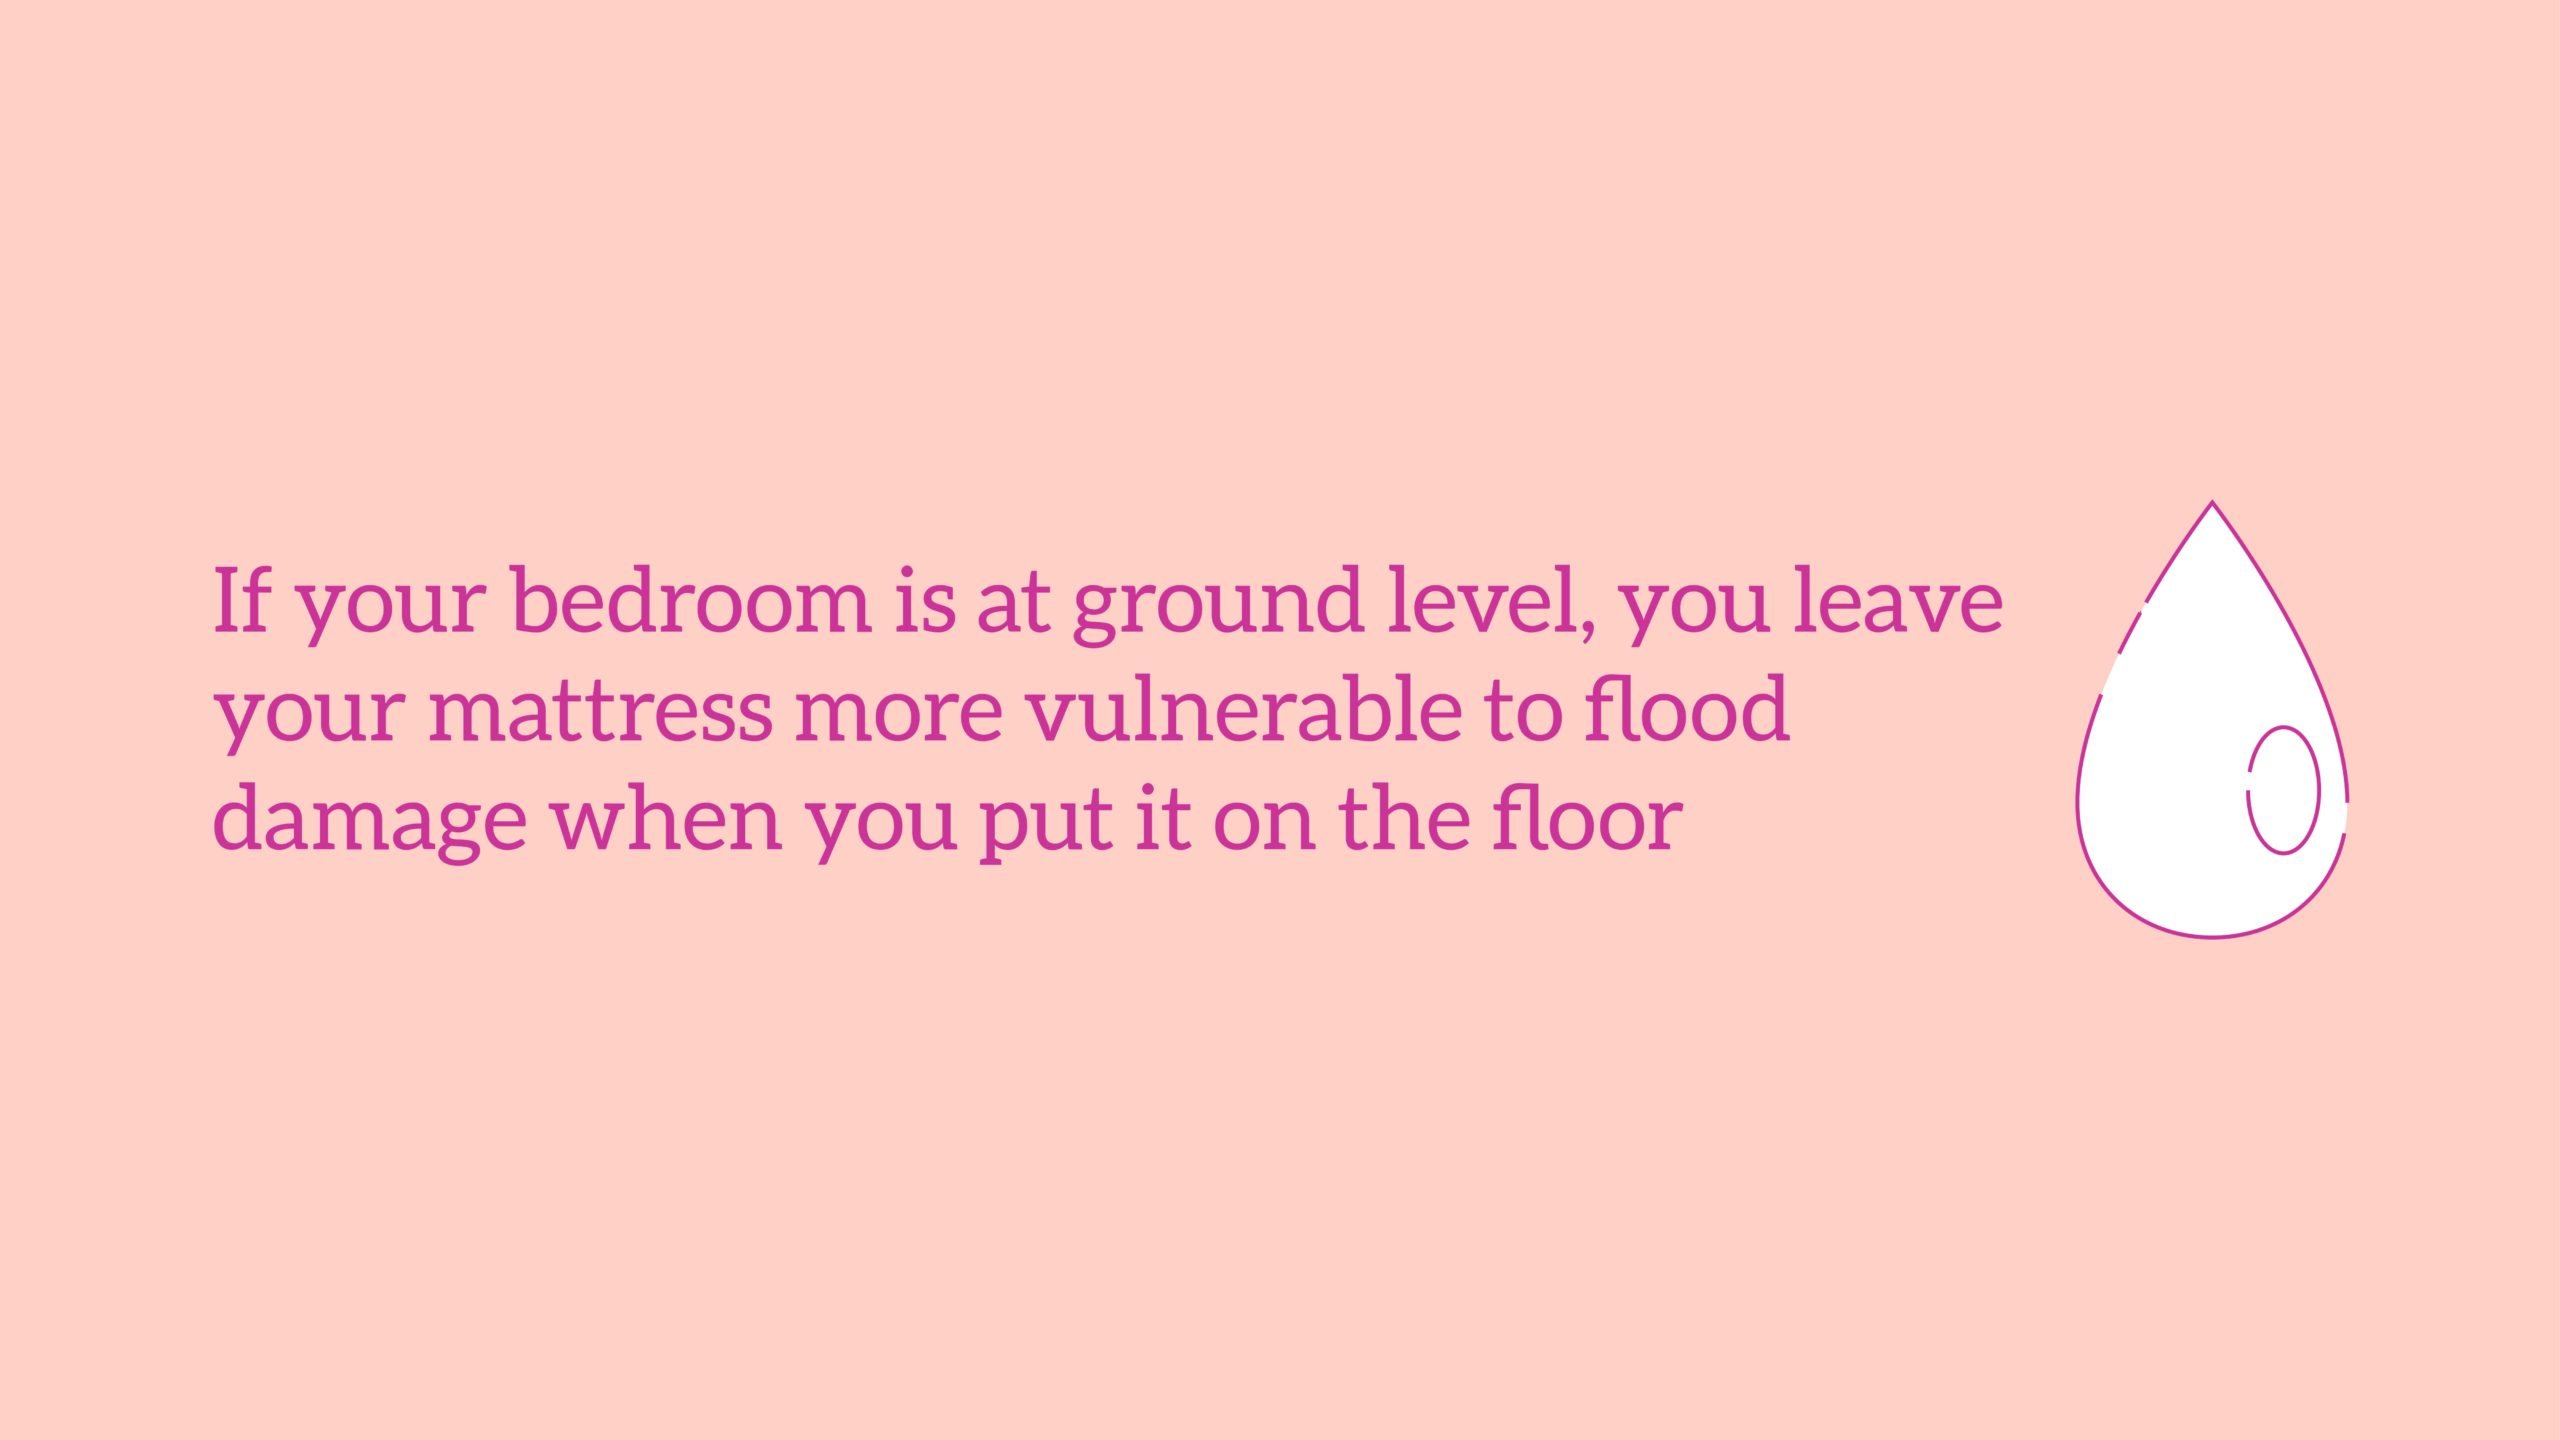 Can You Put a Mattress On the Floor?